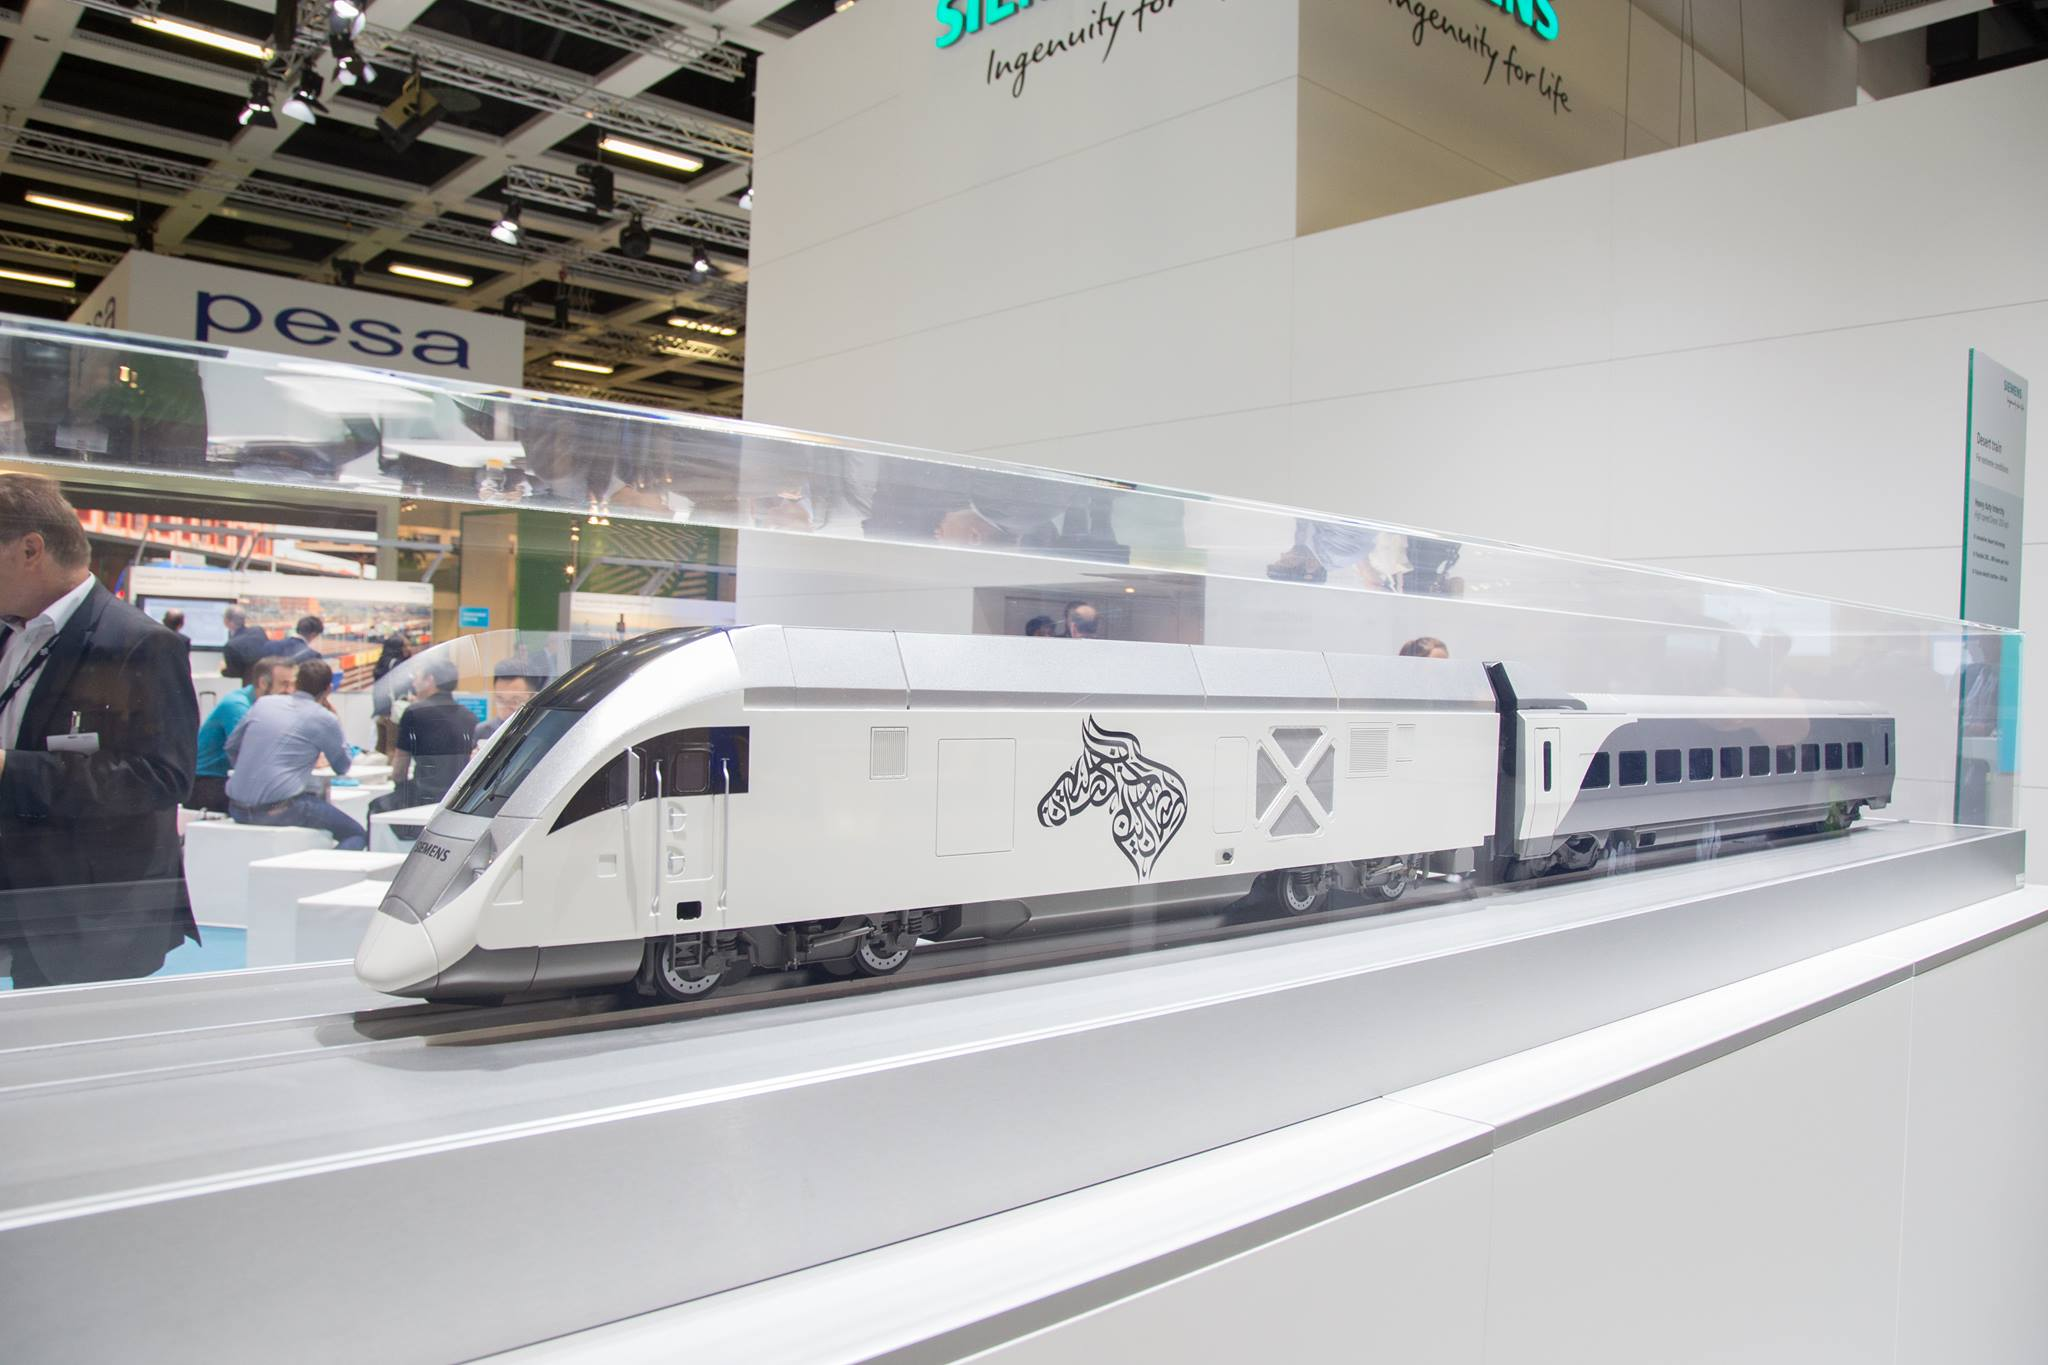 Siemens Charger desert train at the Siemens stand - Henk Zwoferink